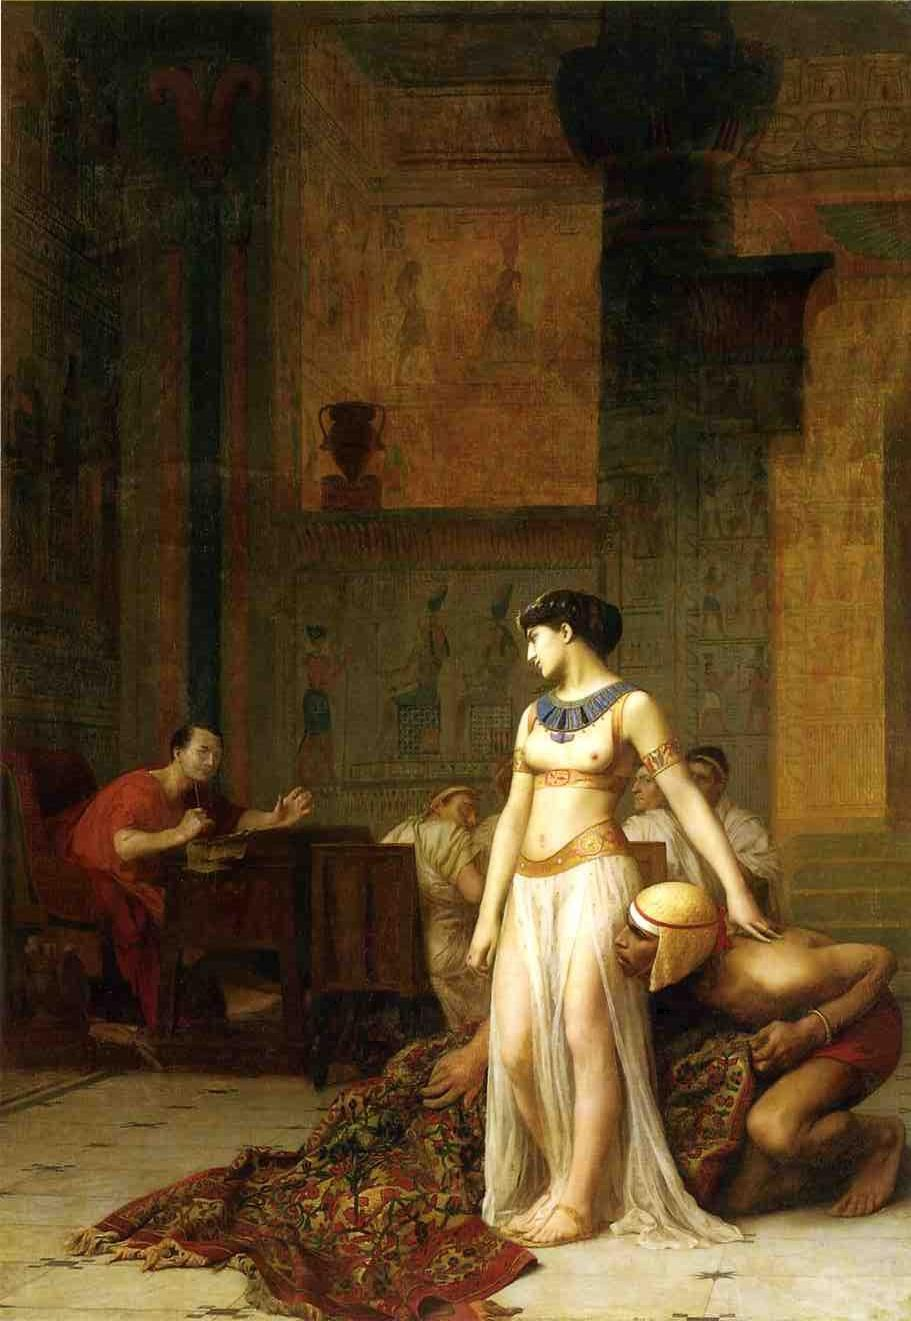 Cleopatra confronts Julius Caesar in this 1866 painting.